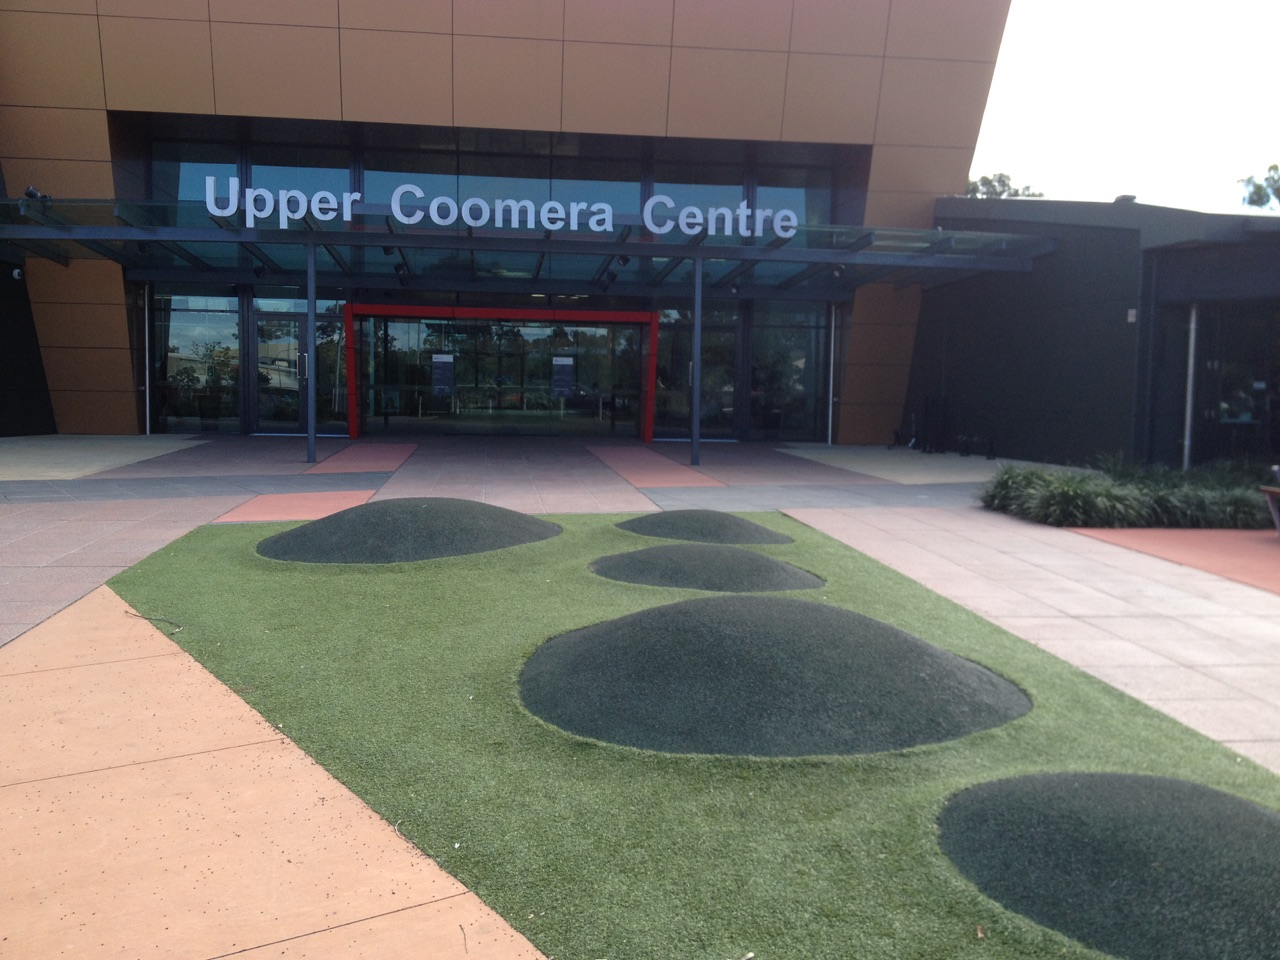 Upper Coomera Centre © GreenSocks